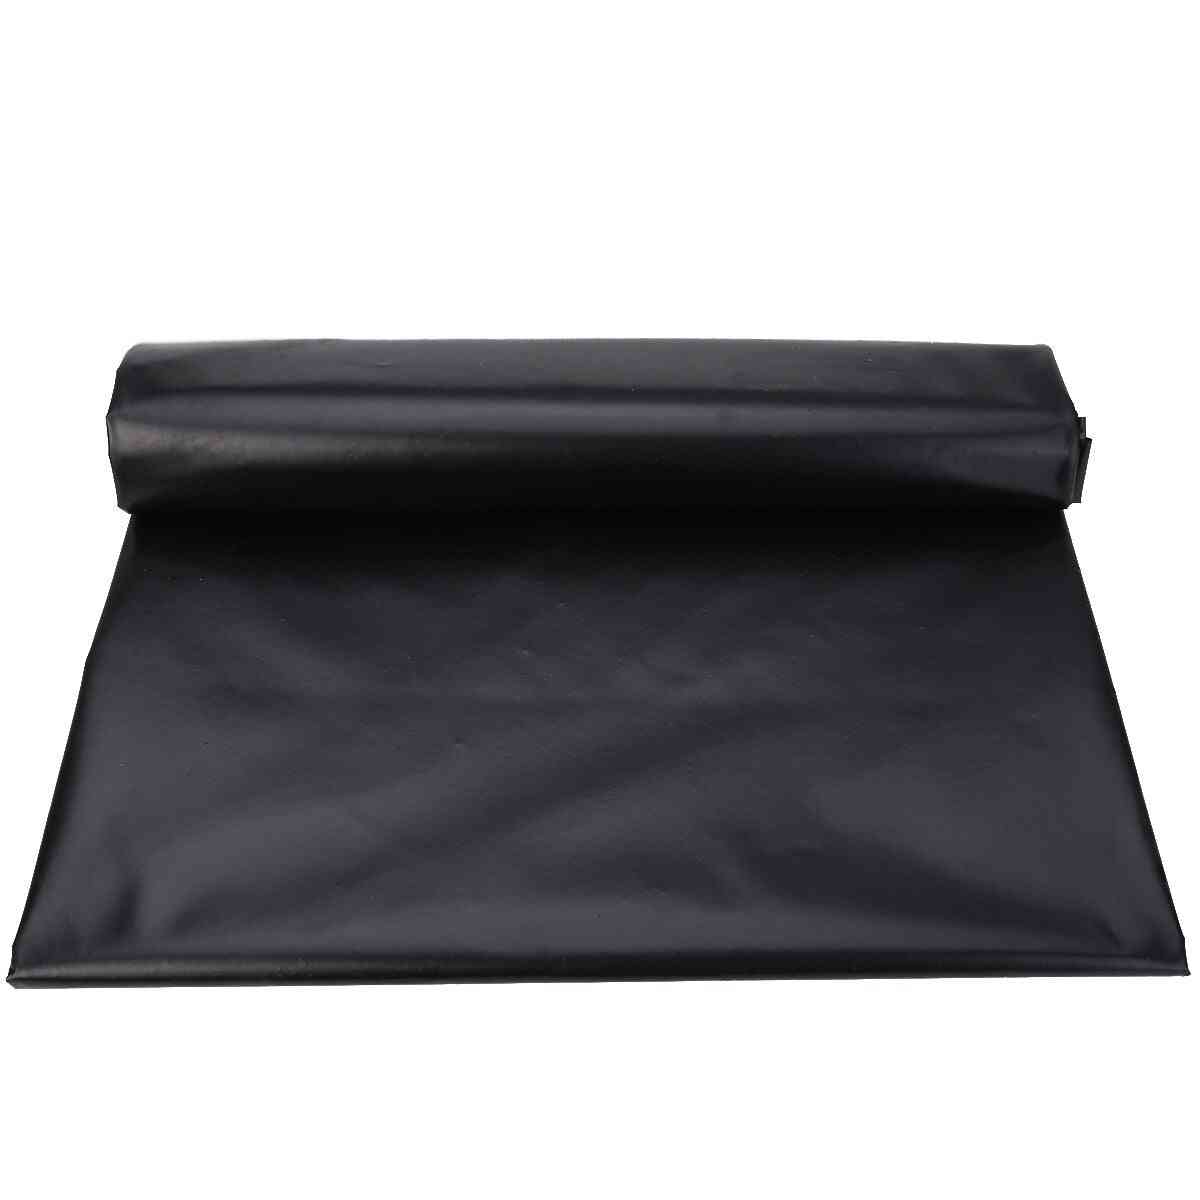 Fish Pond Liner Garden Pools, Hdpe Membrane Reinforced, Landscaping Pool, Waterproof Cloth For Garden